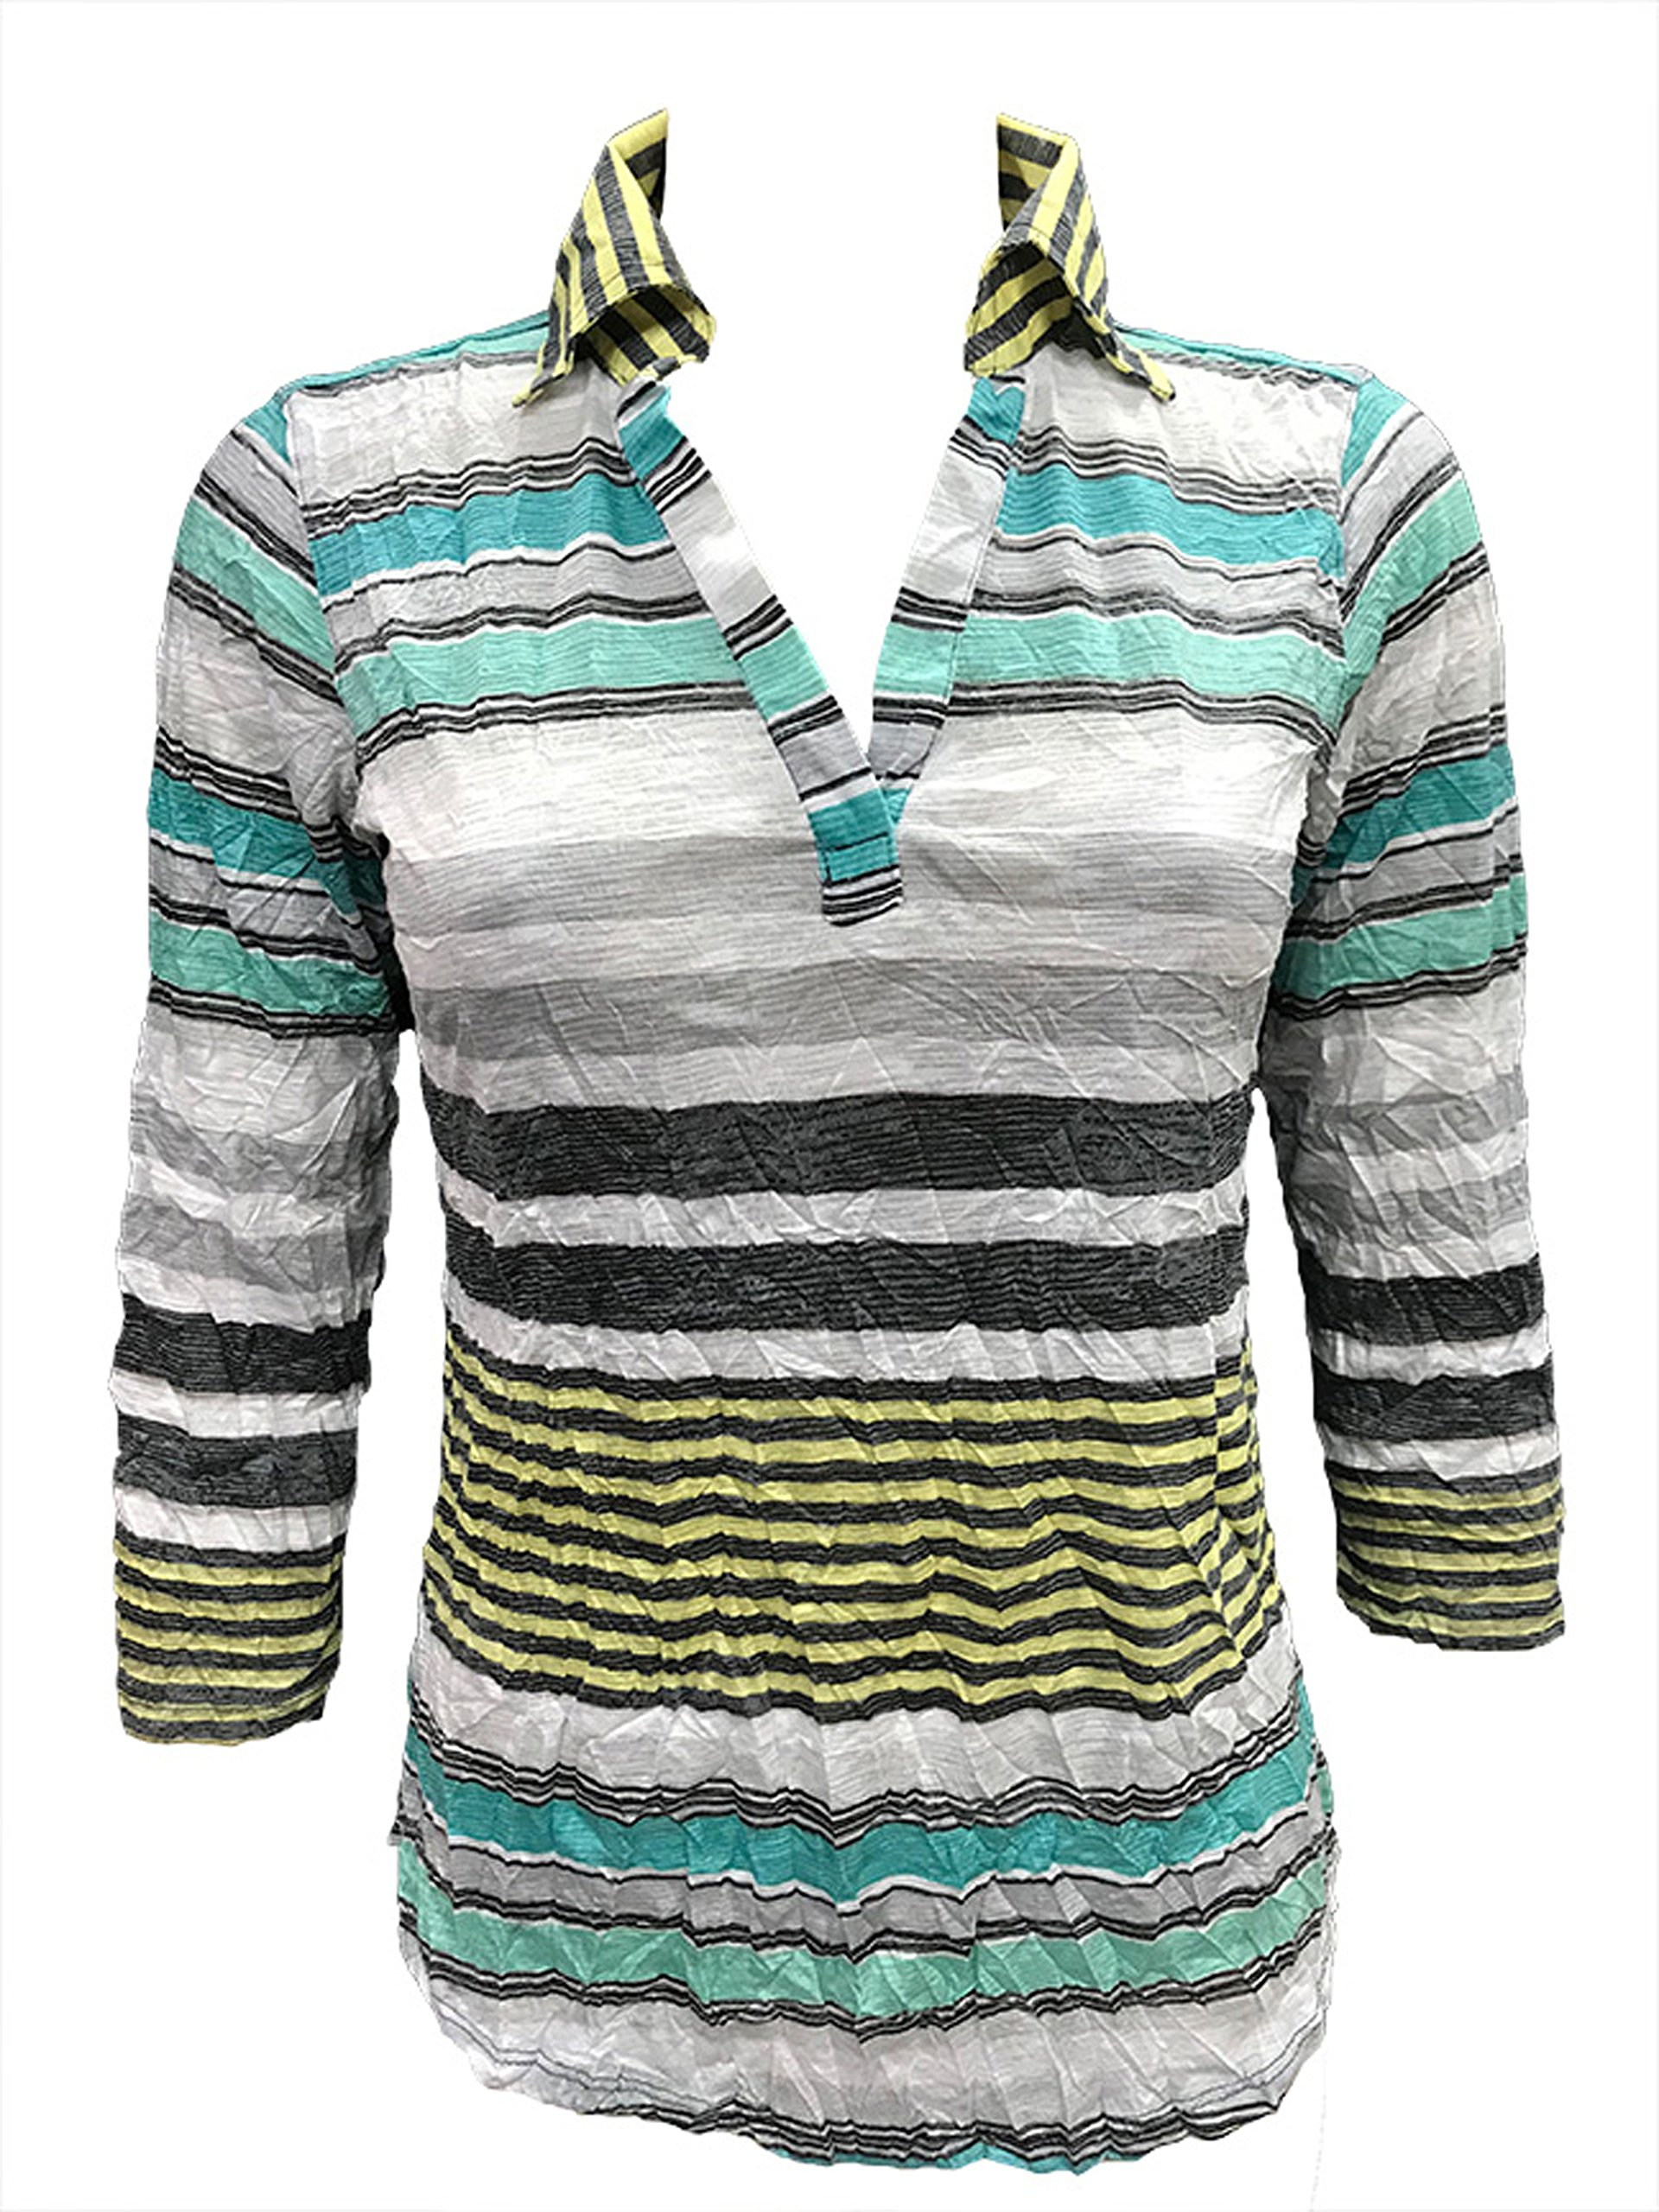 David Cline Woman's Crushed Bold Polo Shirt With 3/4 Sleeves. Super Soft Fabric.